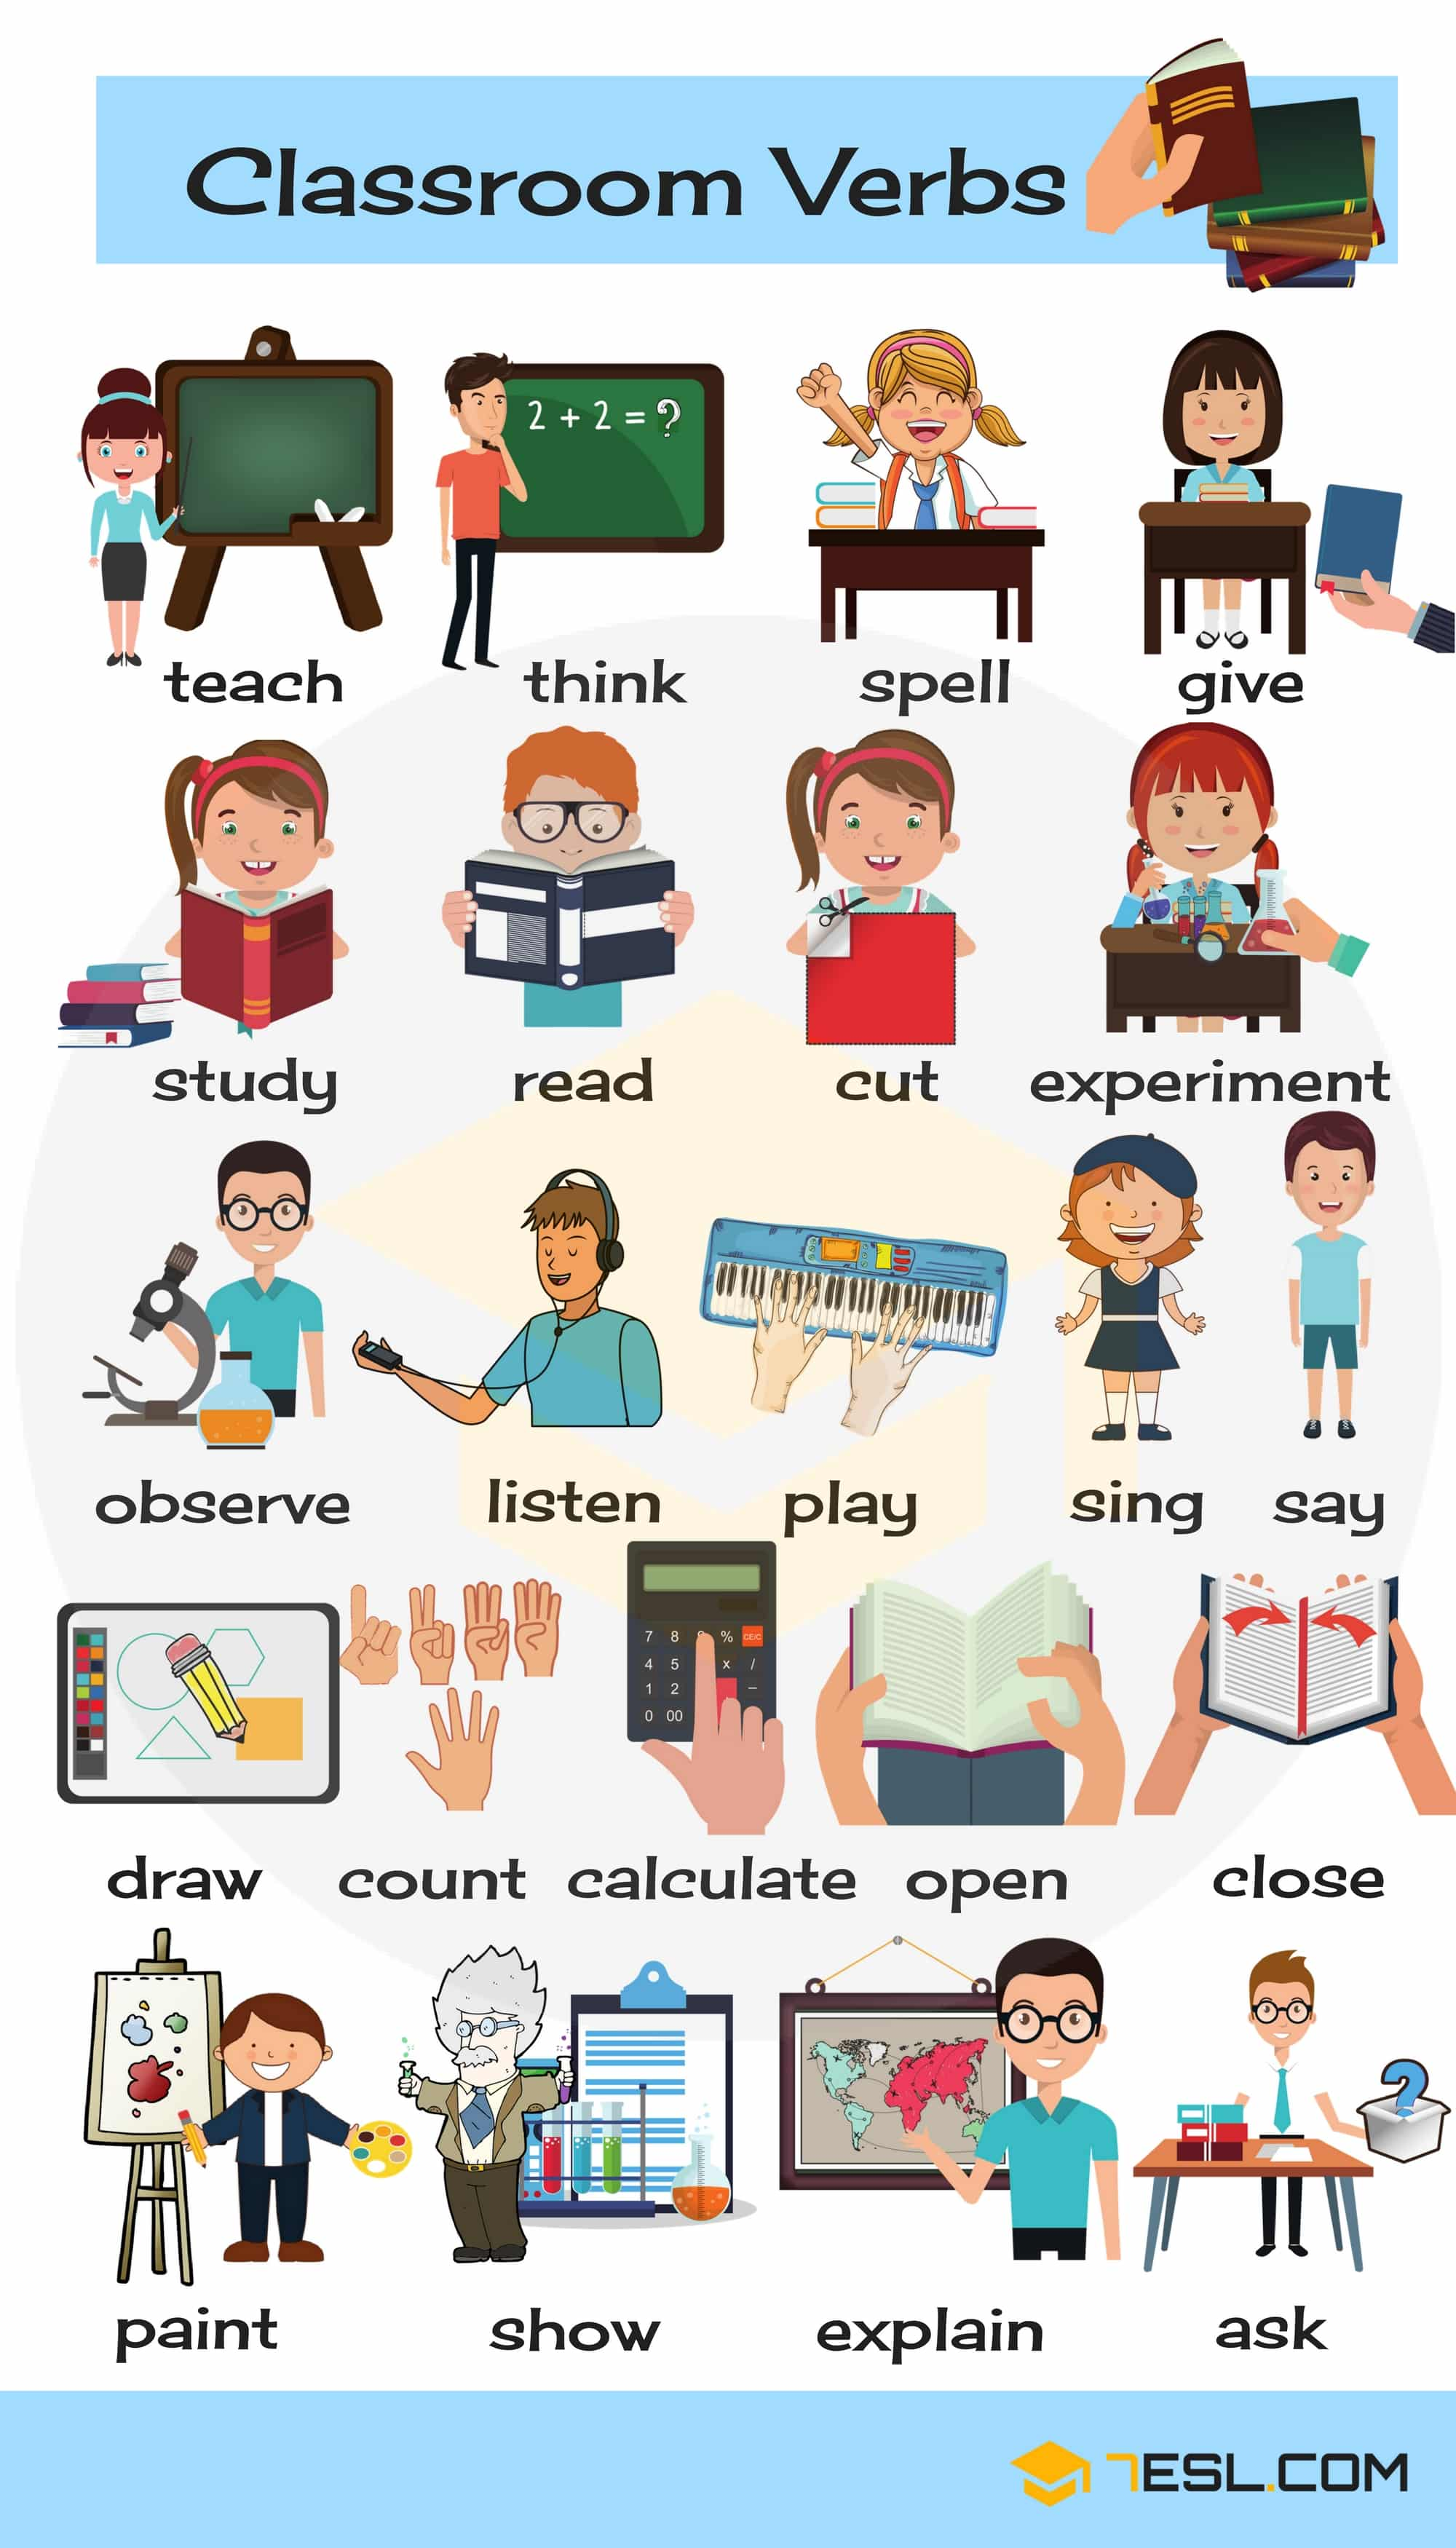 Classroom Verbs List Of School Verbs With Pictures